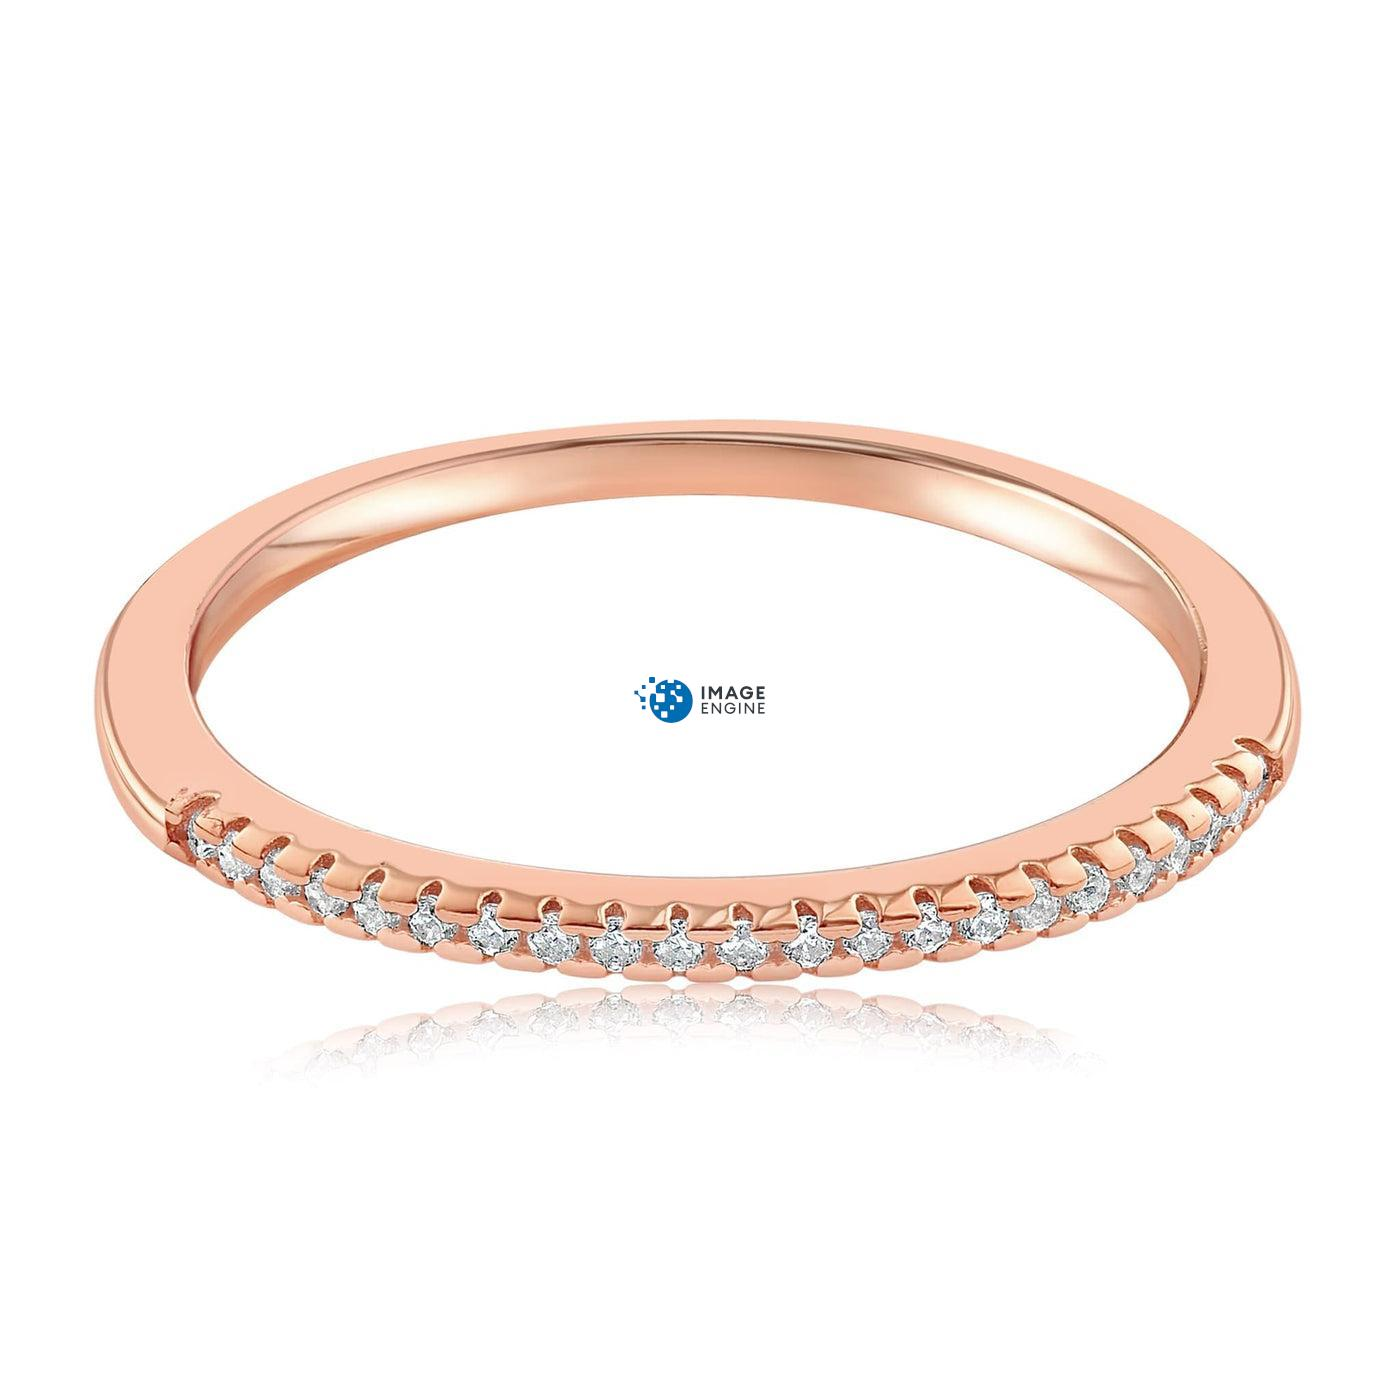 Brianna Bezel Ring - Front View Facing Down - 18K Rose Gold Vermeil